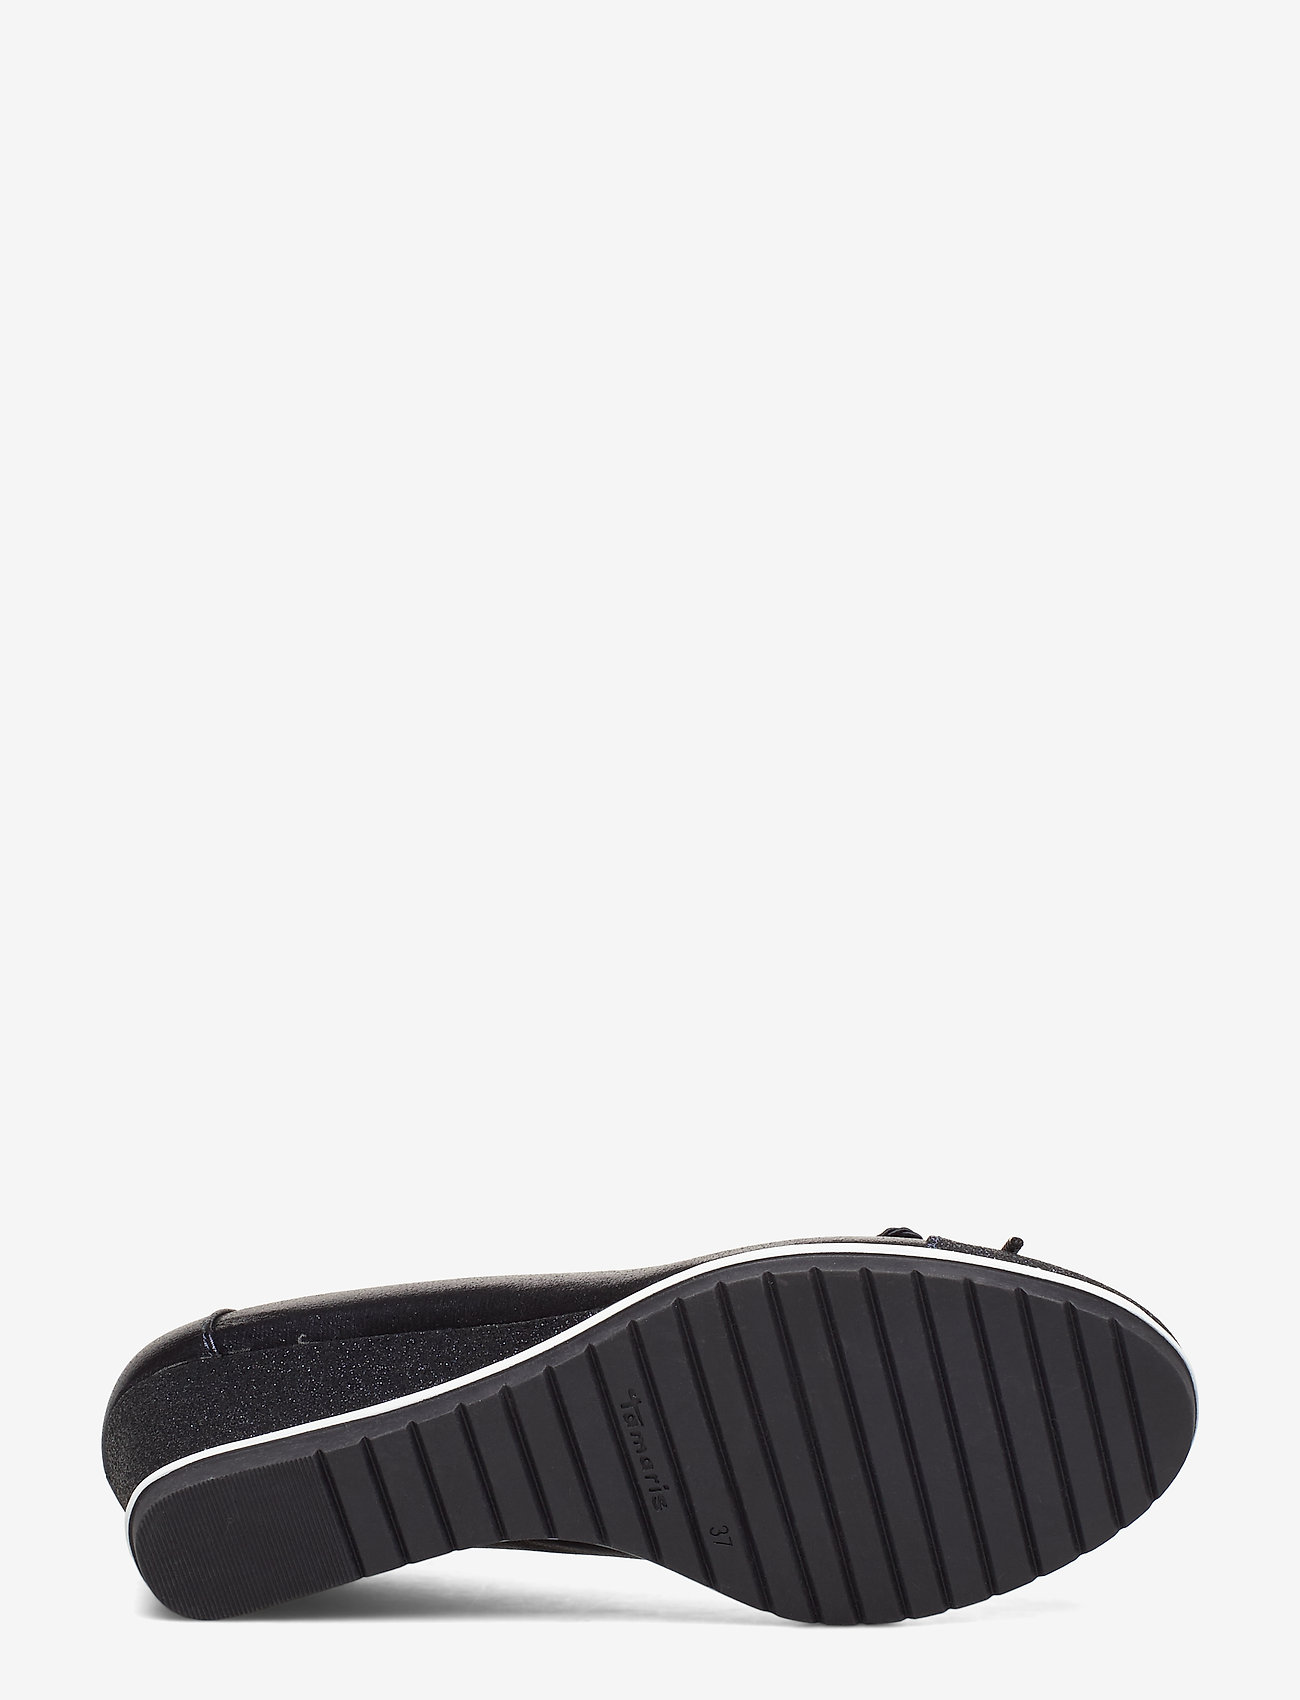 Woms Court Shoe (Navy Comb) (324.35 kr) - Tamaris